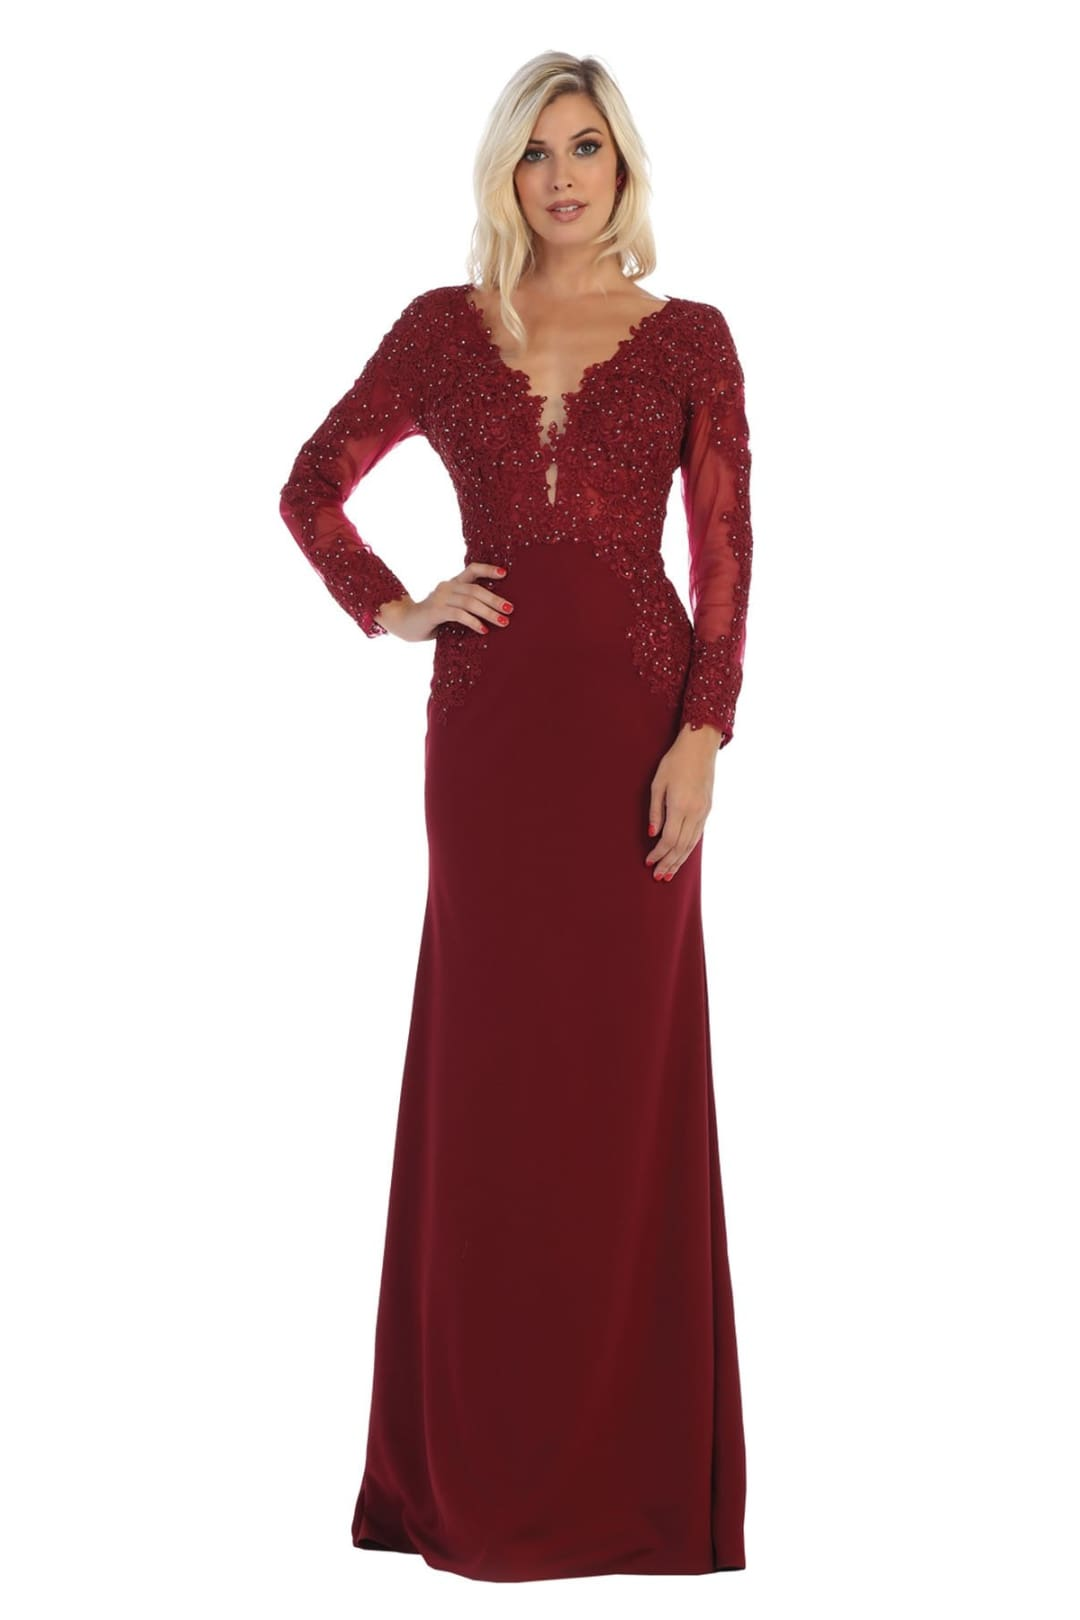 Long Sleeve V-Neck Dress - Burgundy / 6